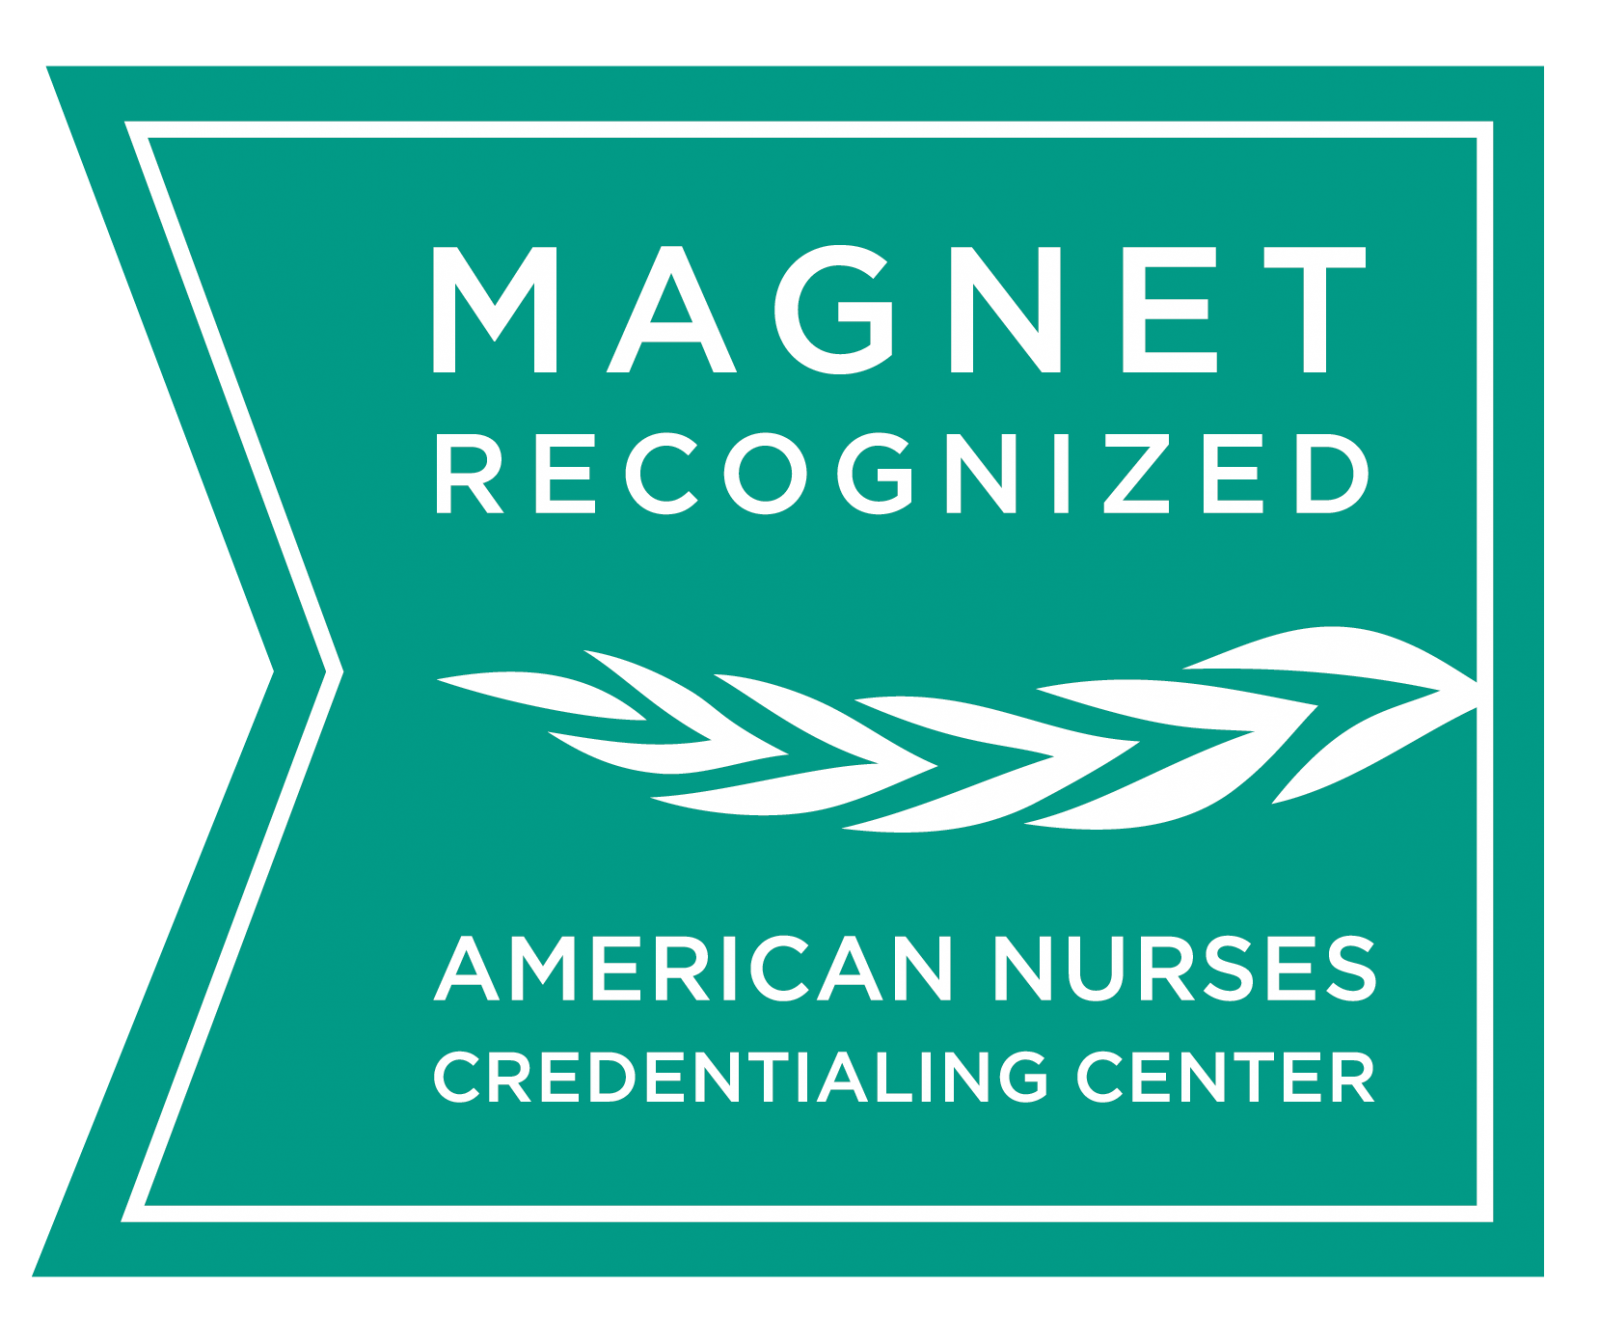 Nurse Magnet status badge